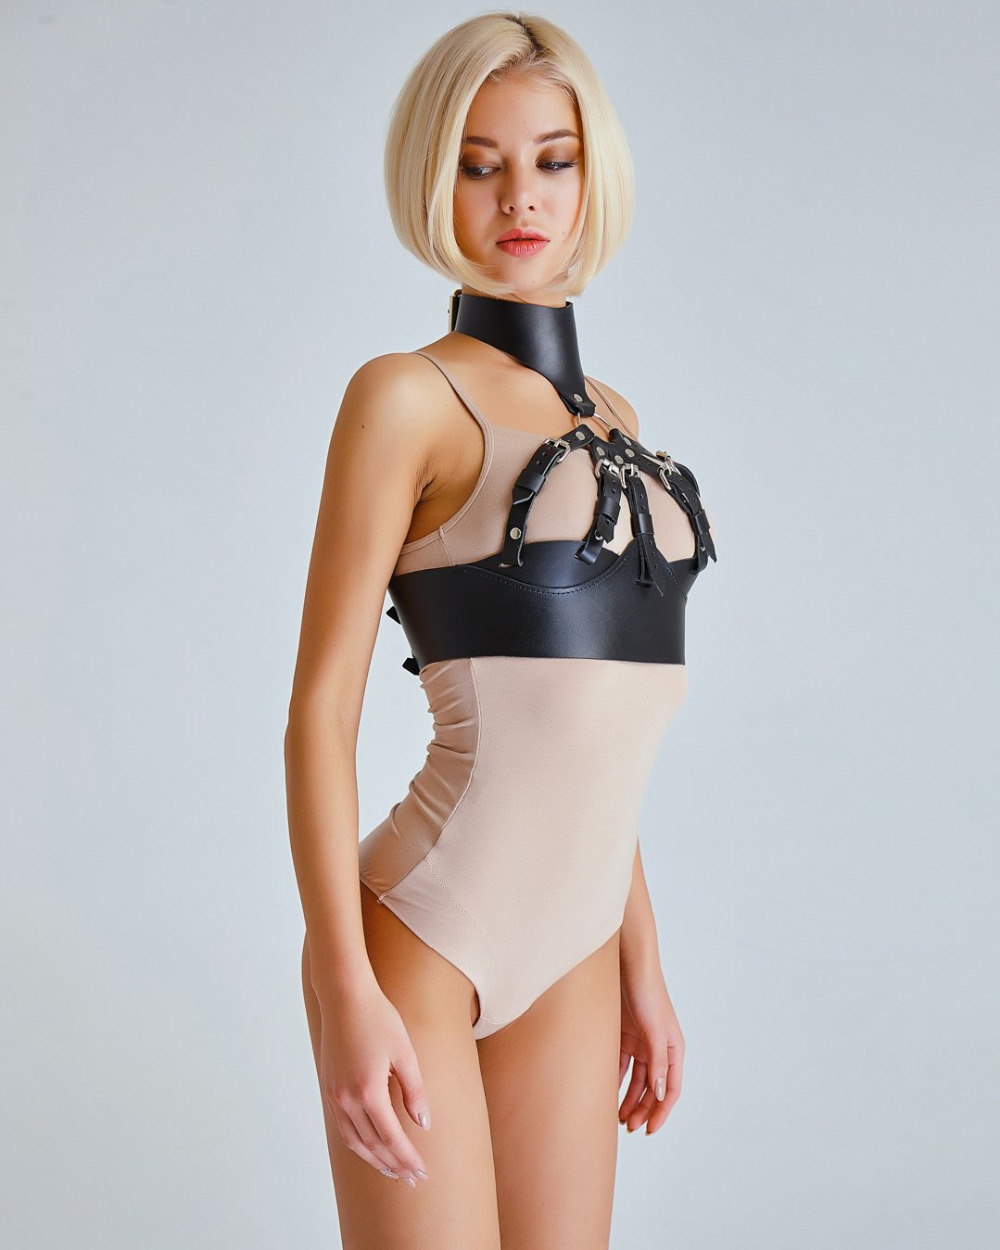 dr_harness11197_2048x2048